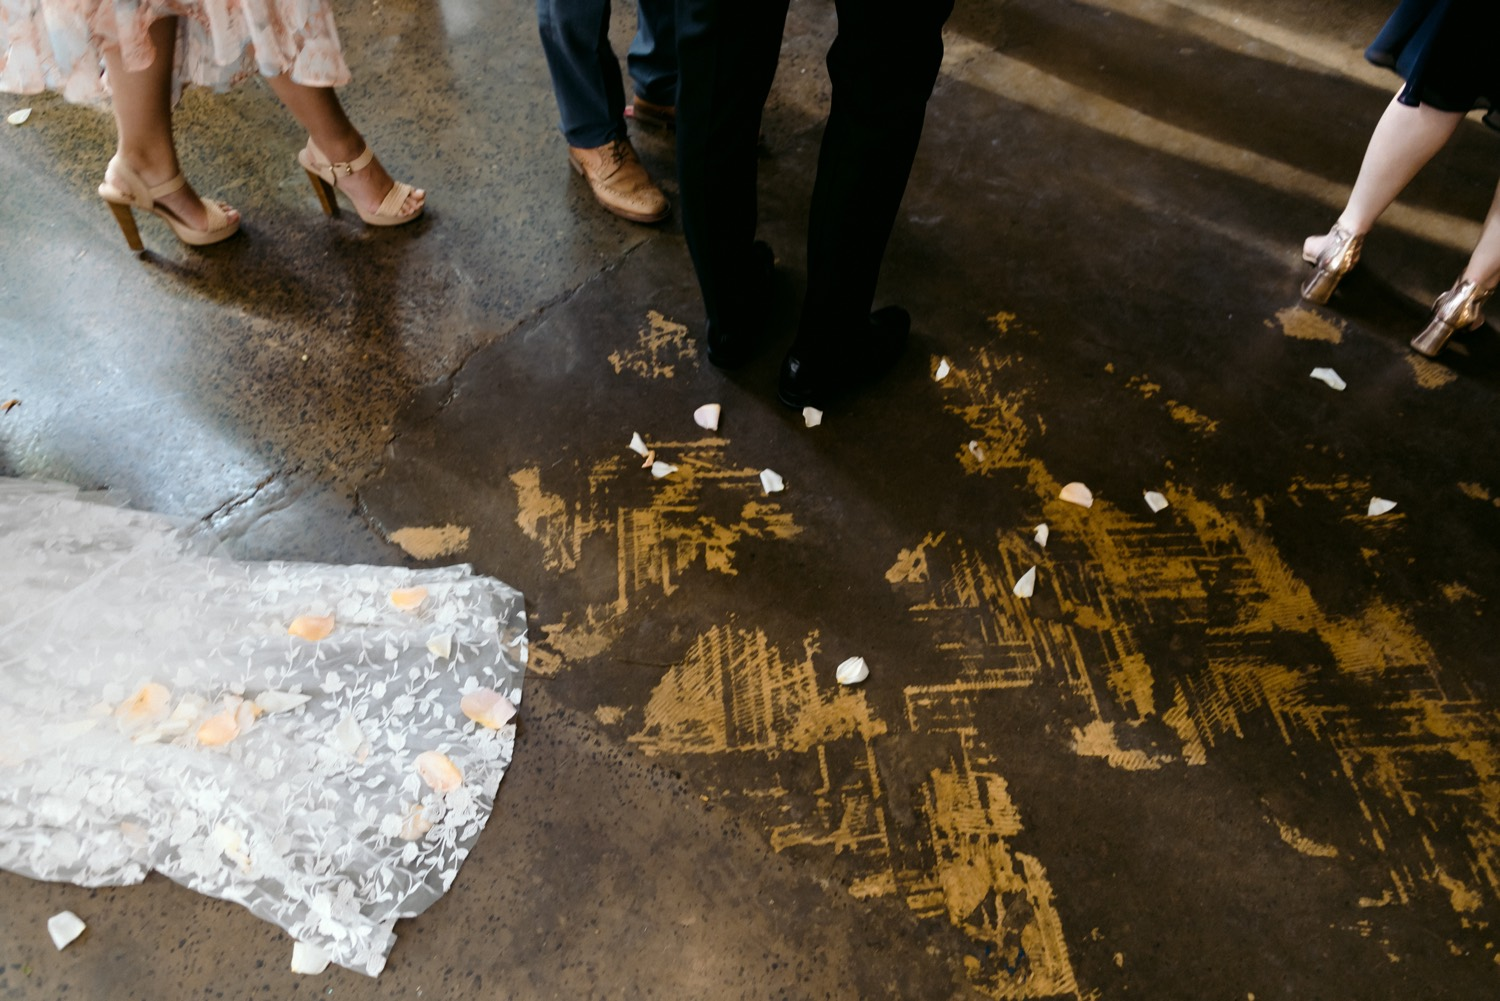 photo of floor showing confetti petals and brides dress